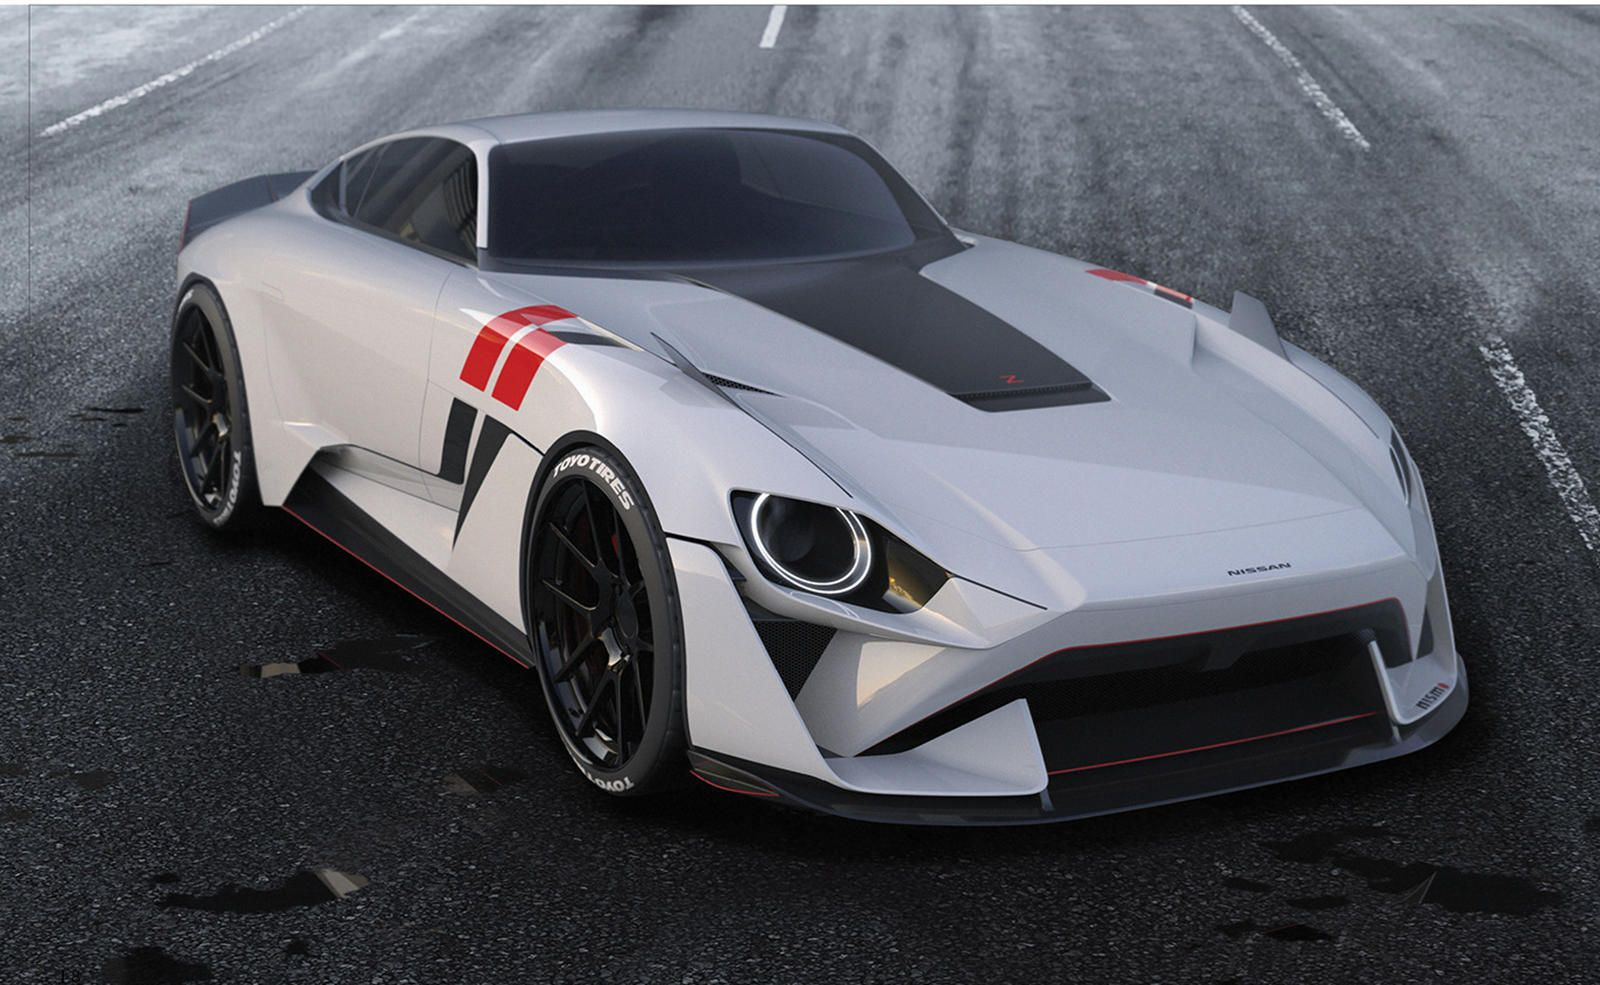 Everything You Need To Know About The Nissan 400z A New Generation Of Nissan S Z Car Is Coming In 2020 Nissan Z Cars Nissan Z New Nissan Z